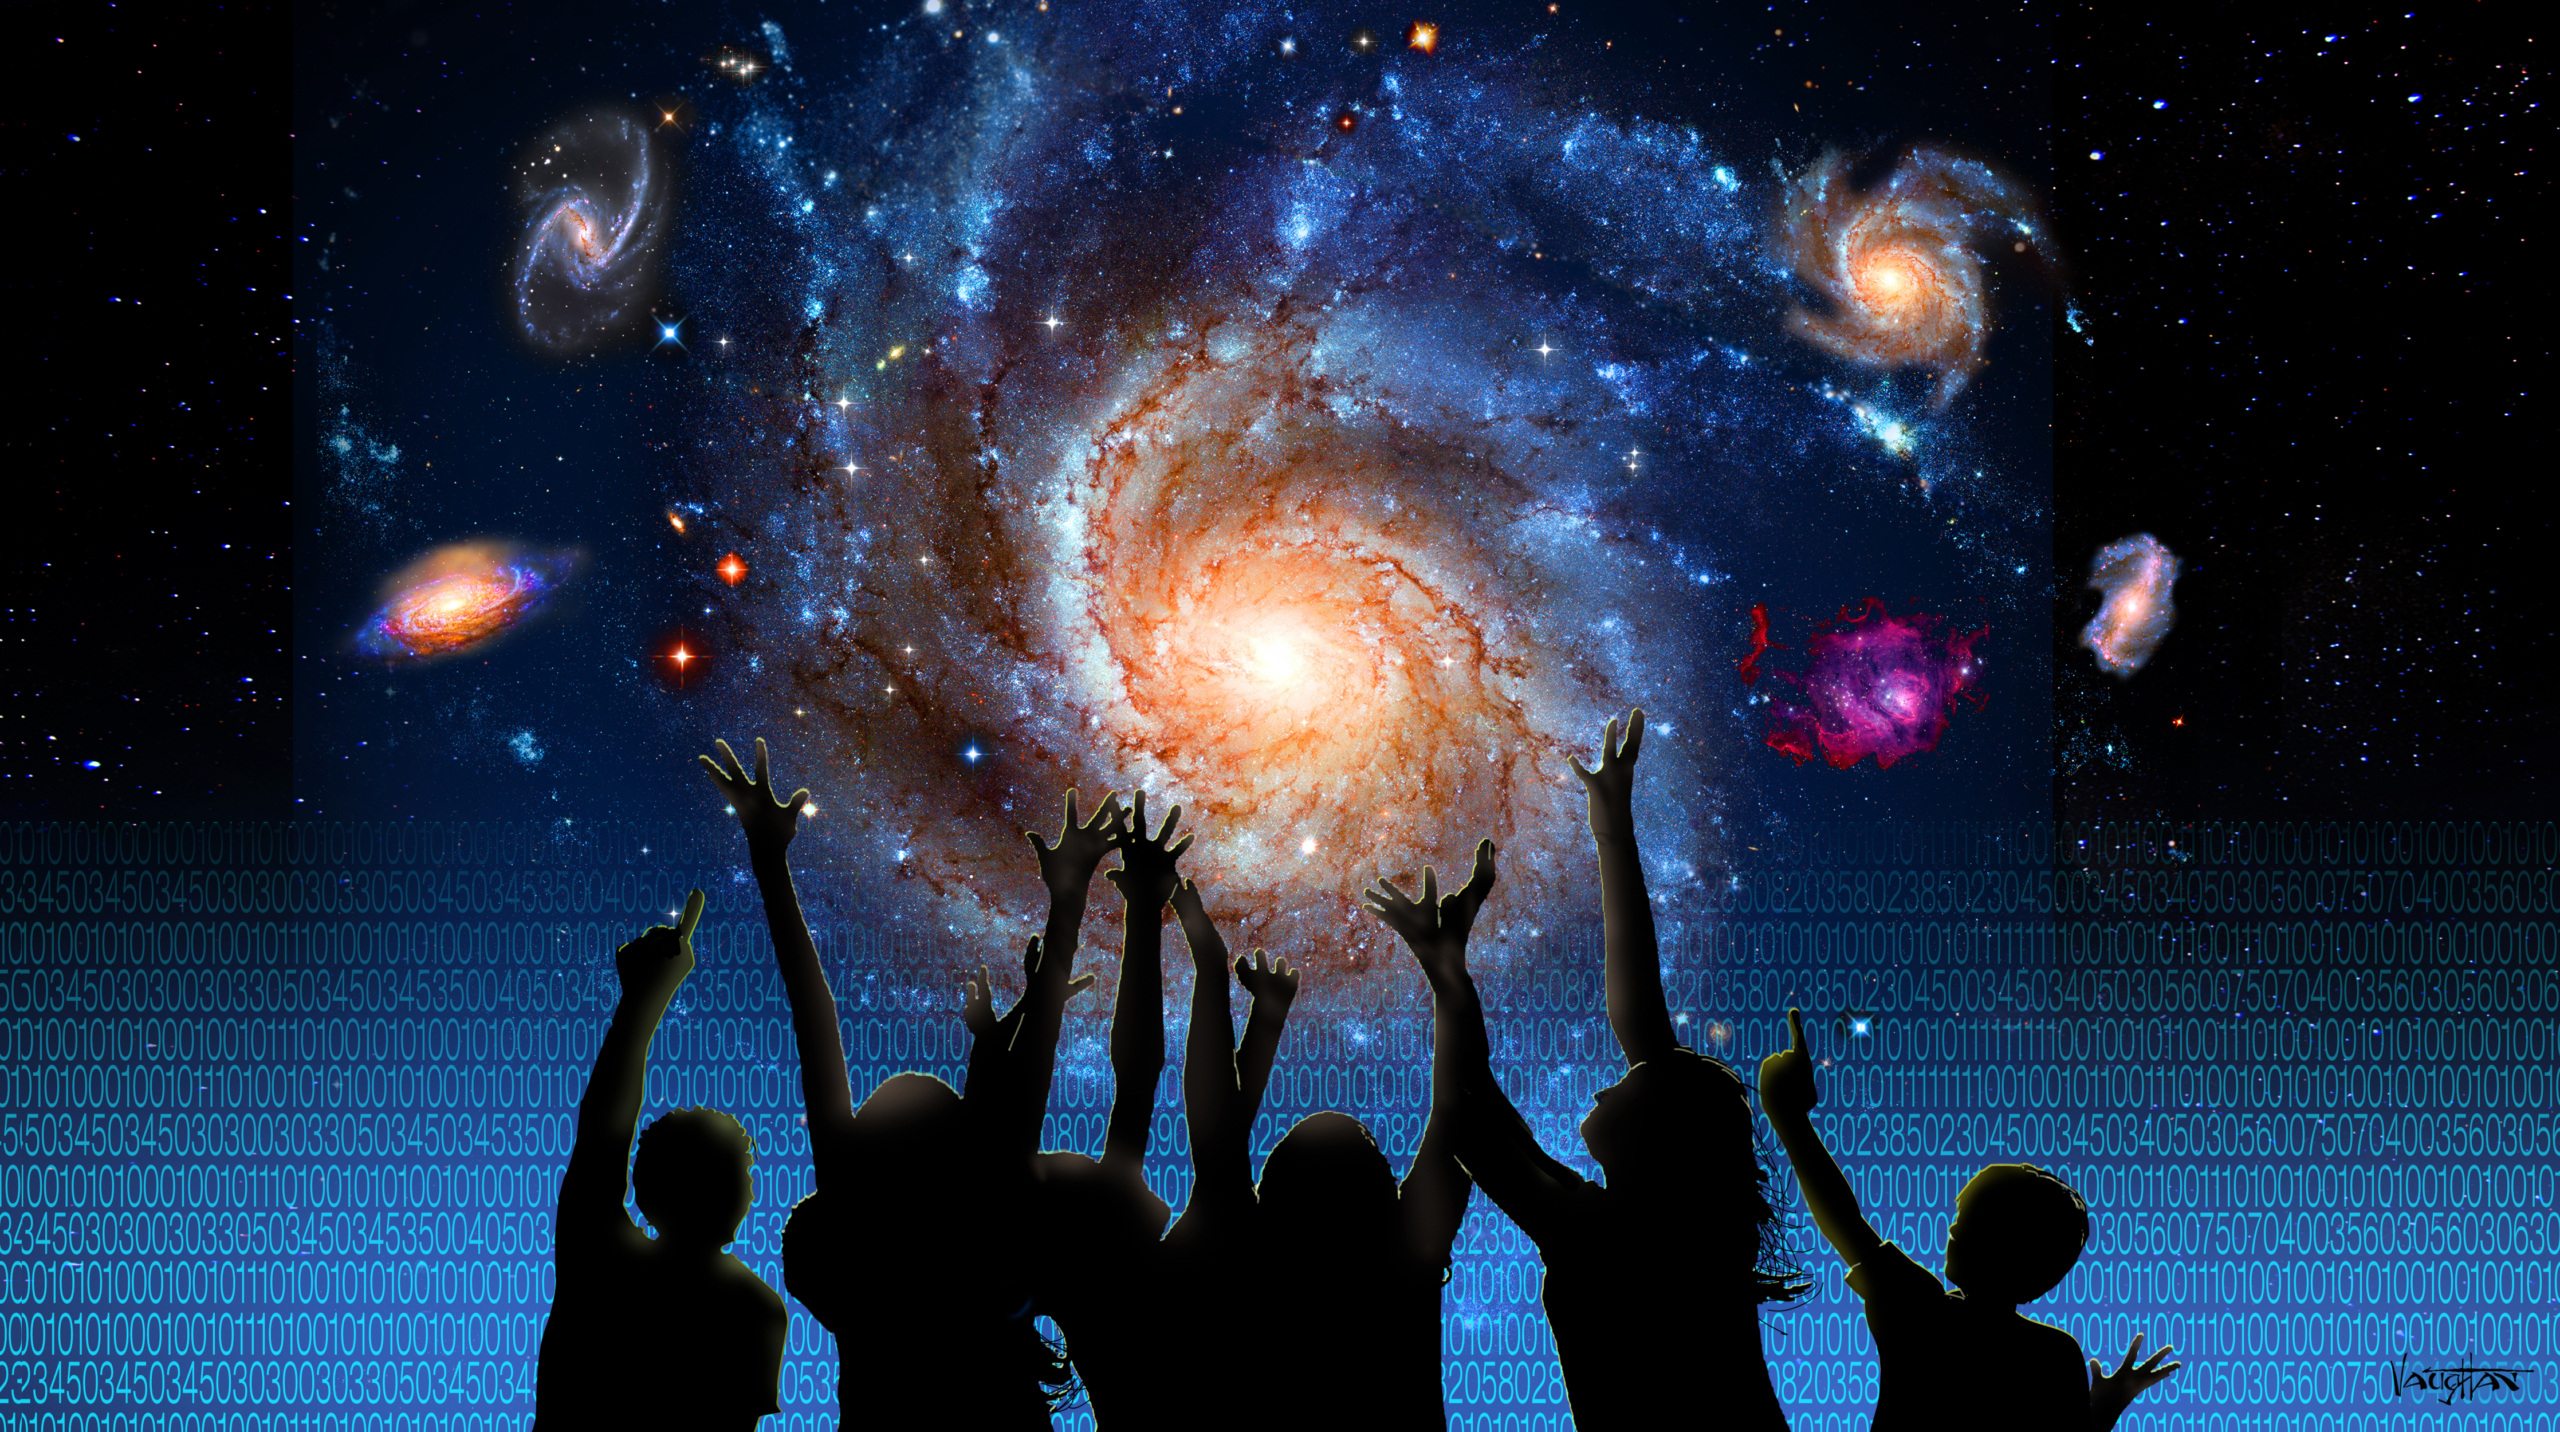 children reaching toward the galaxy